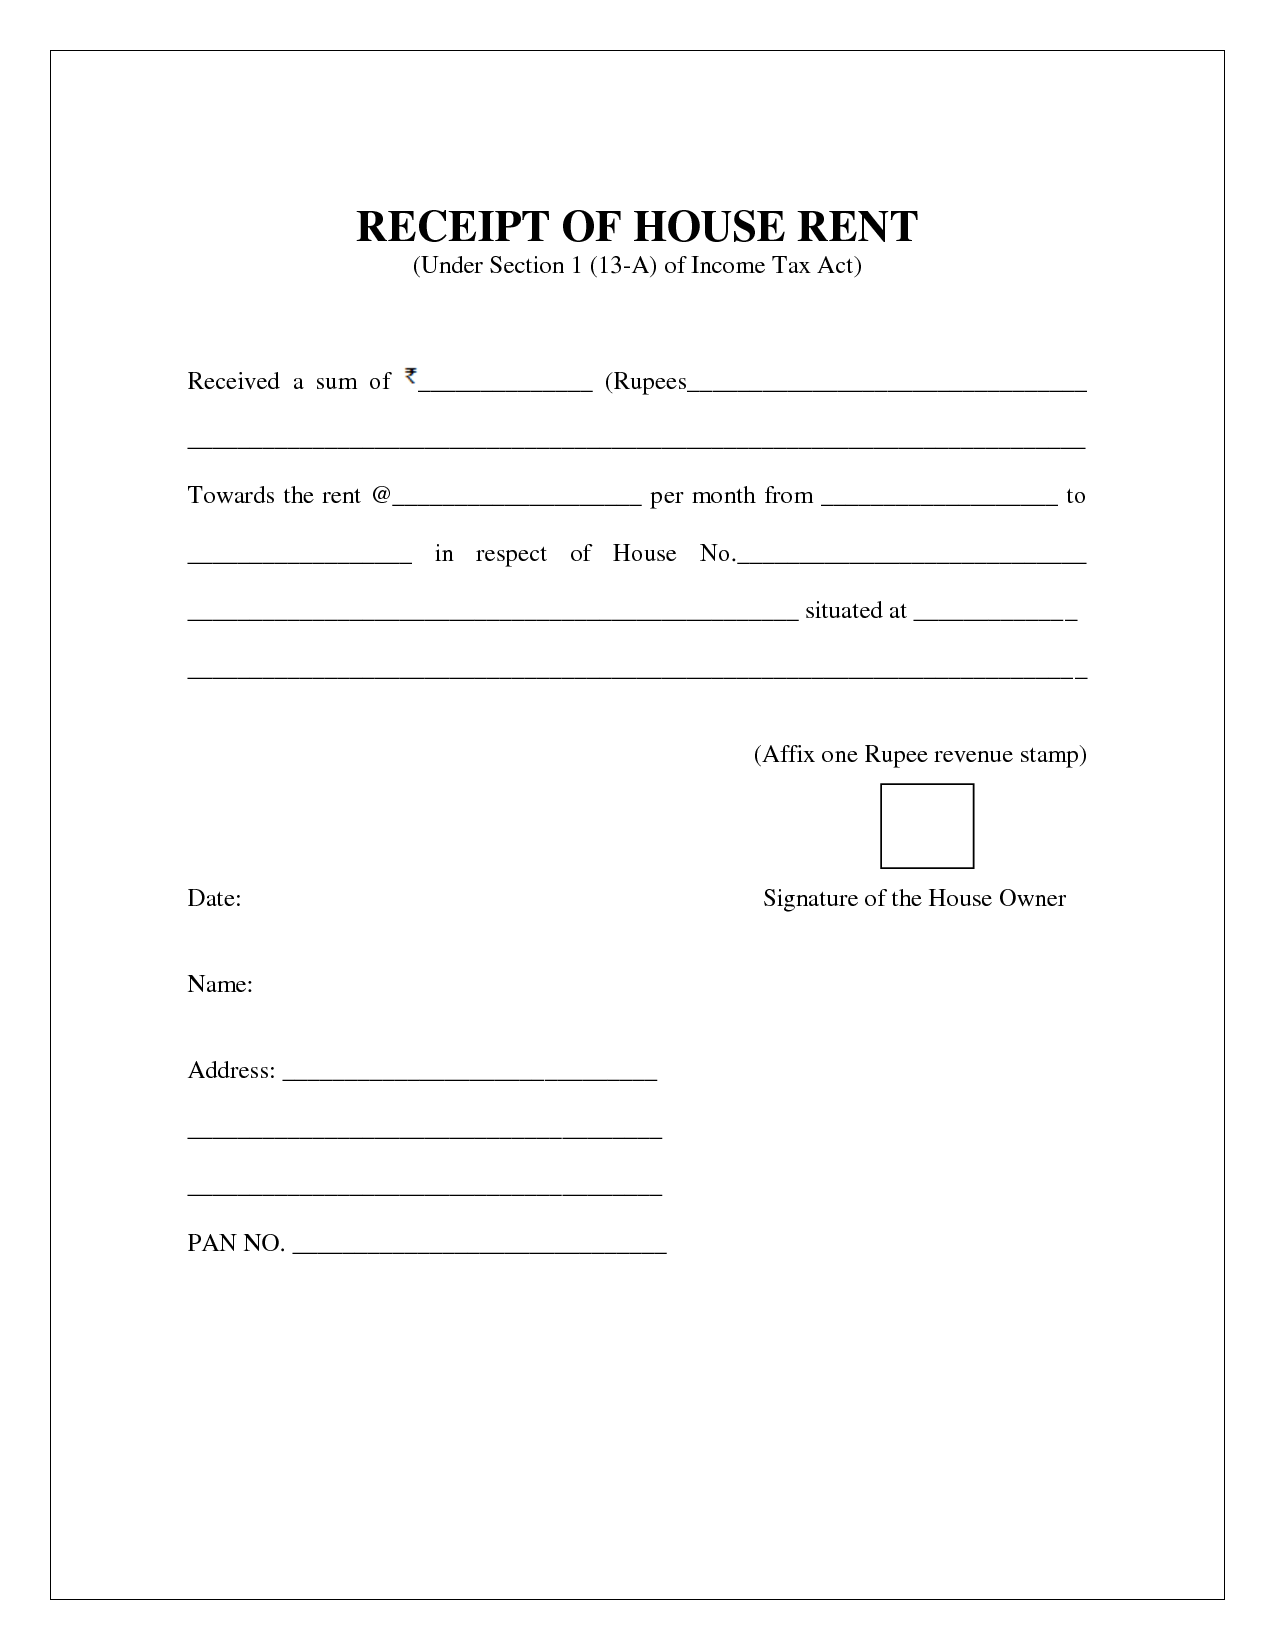 house rental invoice receipt template invoice house rental invoice house rent receipt